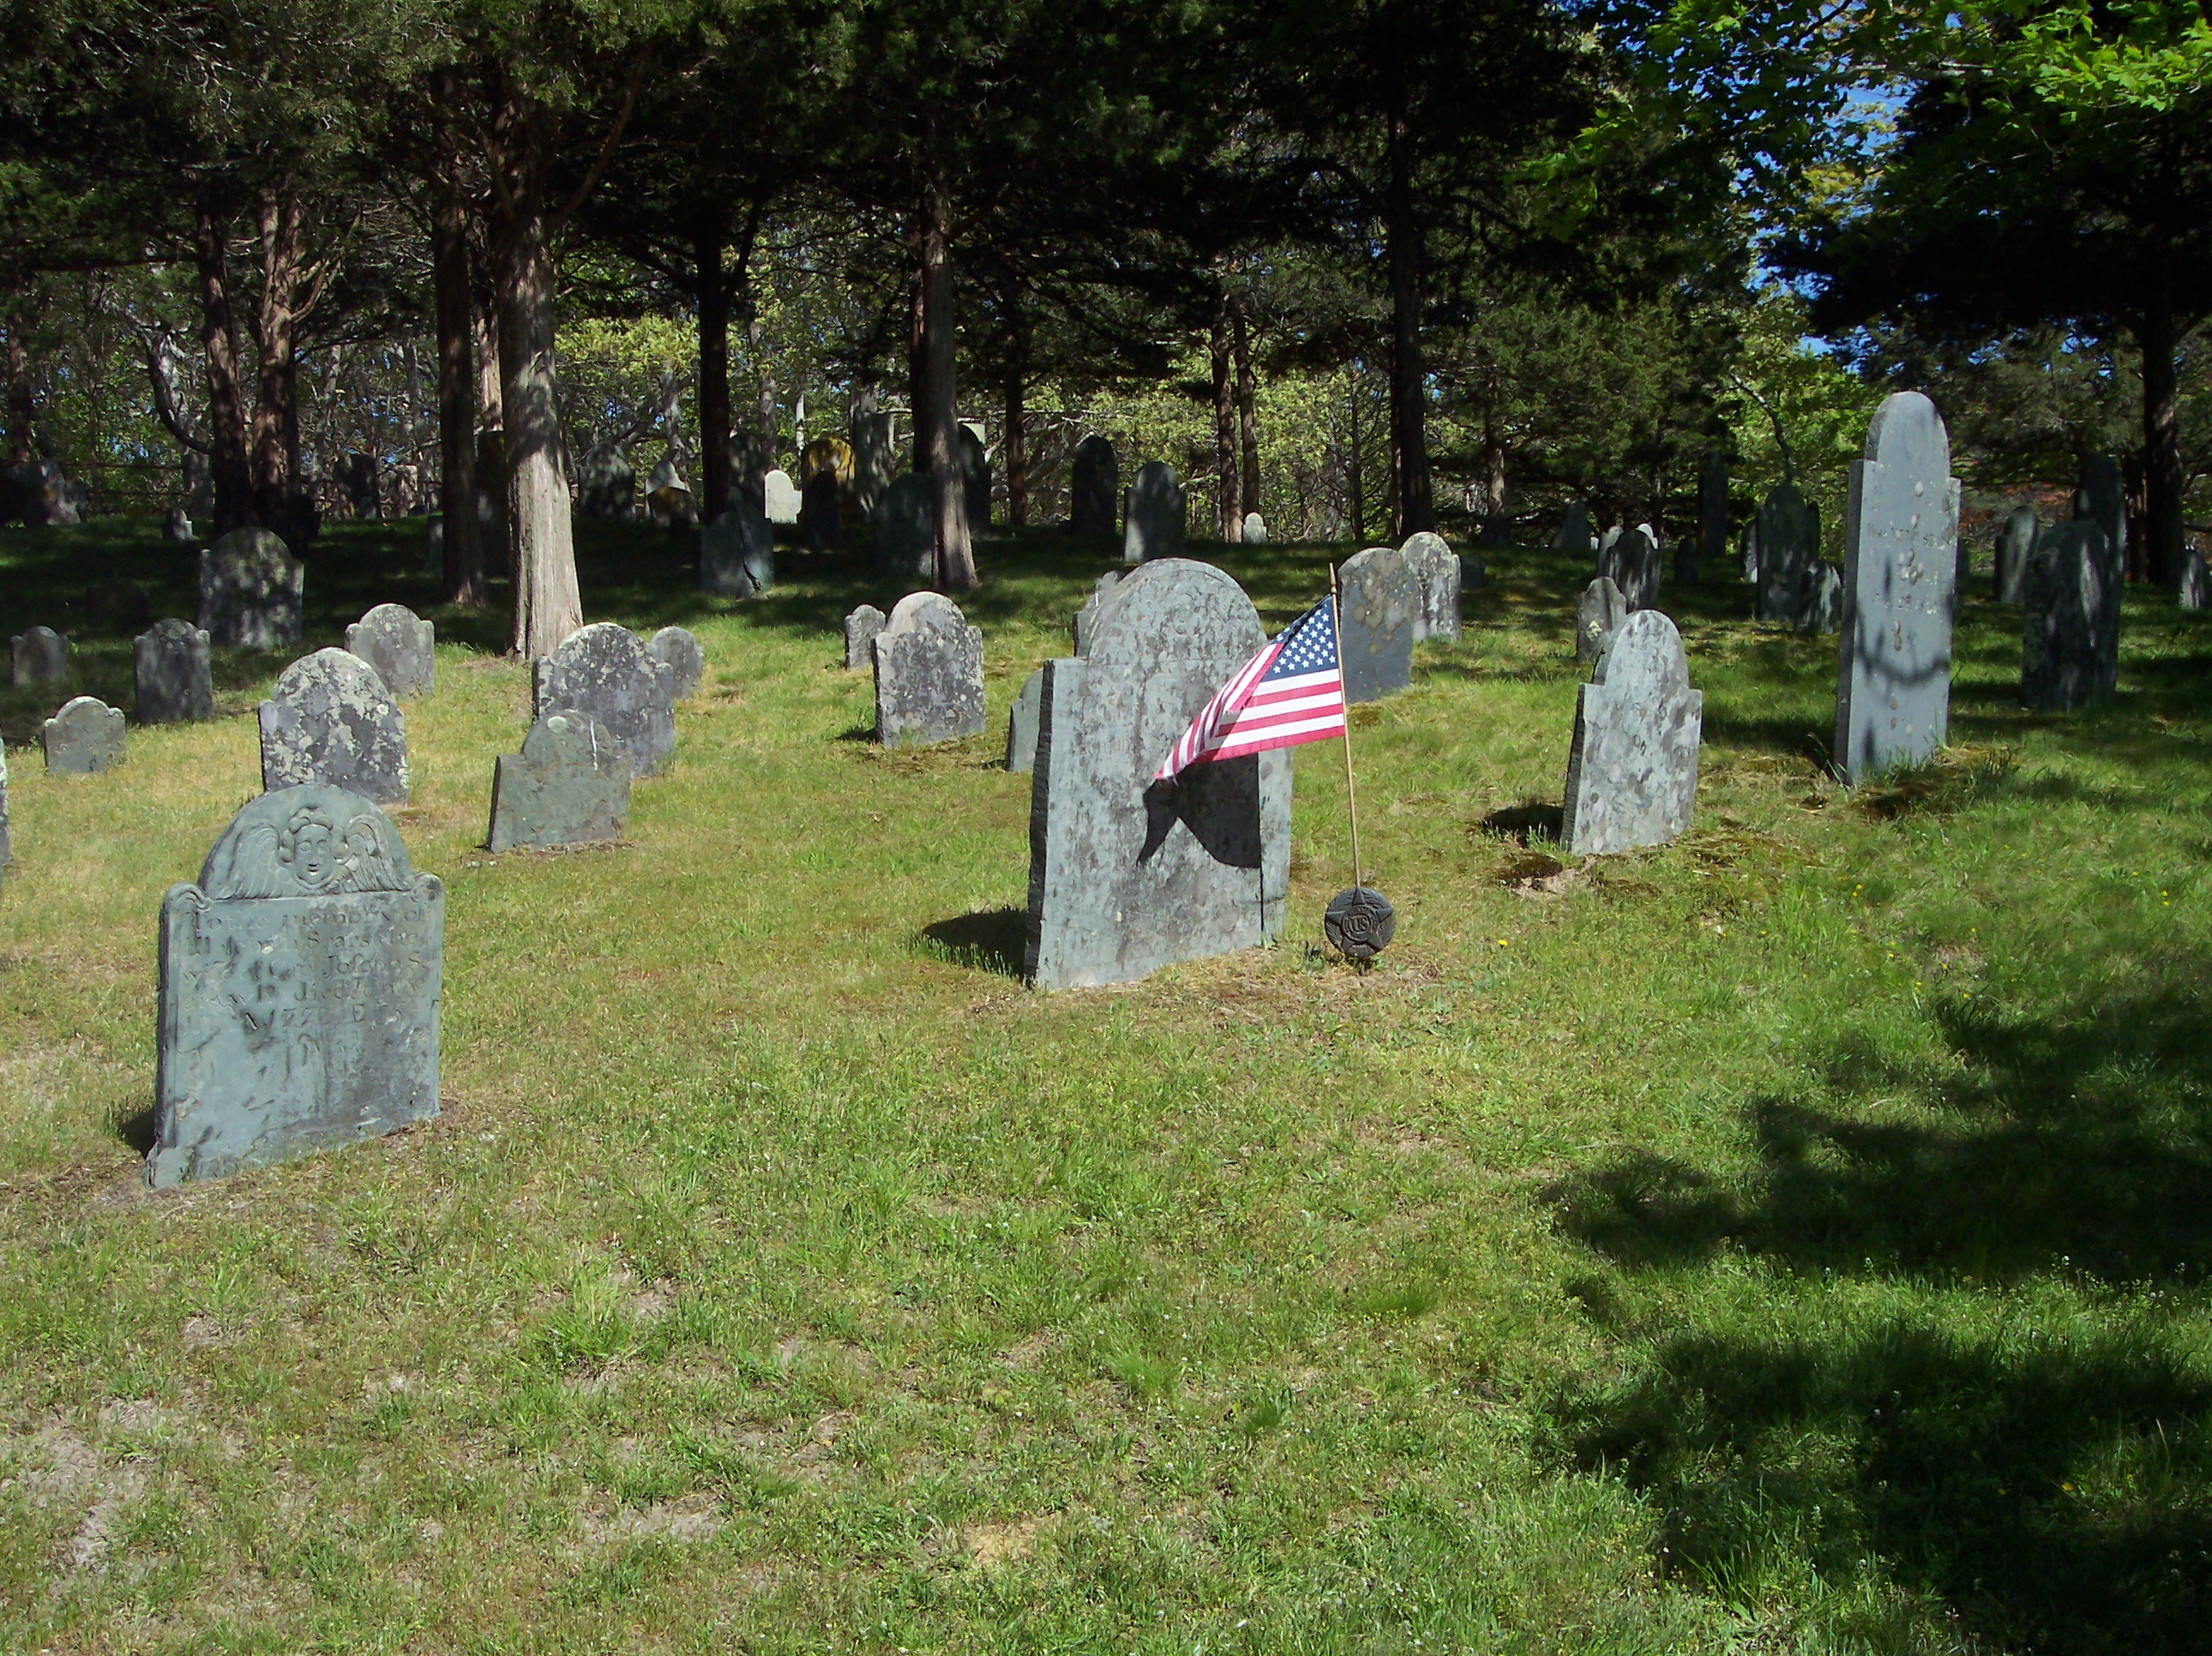 Headstone with Flag, American, Cemetery, Flag, Grass, HQ Photo